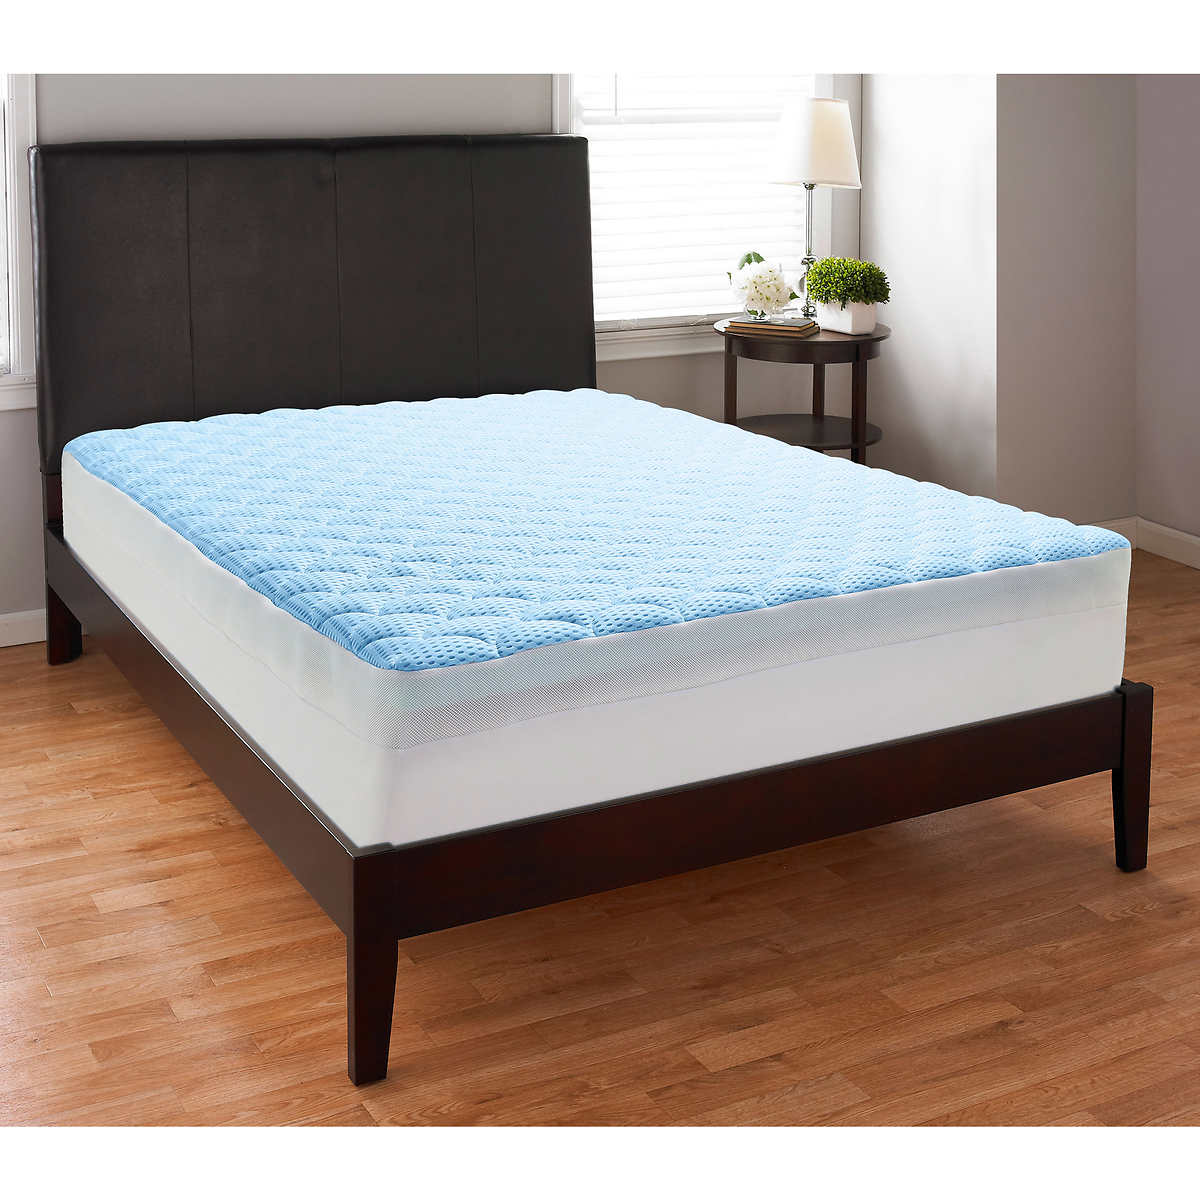 "TheraPure 3"" Memory Foam Mattress Topper with Cool Touch Cover"